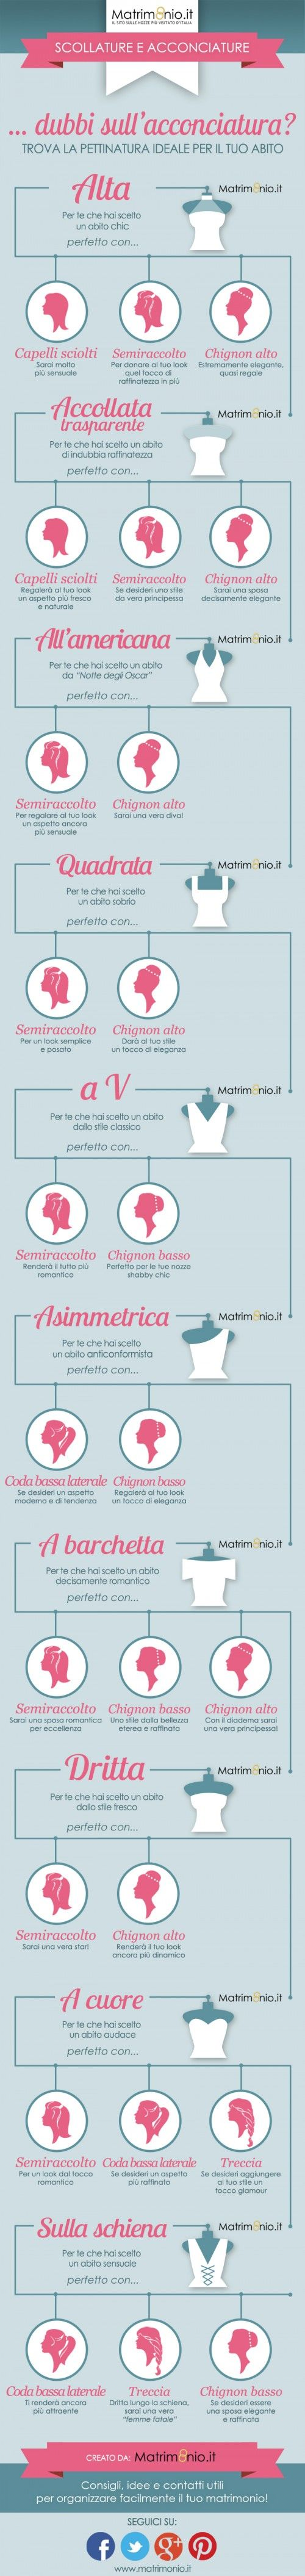 Infografica: come abbinare l'acconciatura all'abito da sposa! | Infographic Love